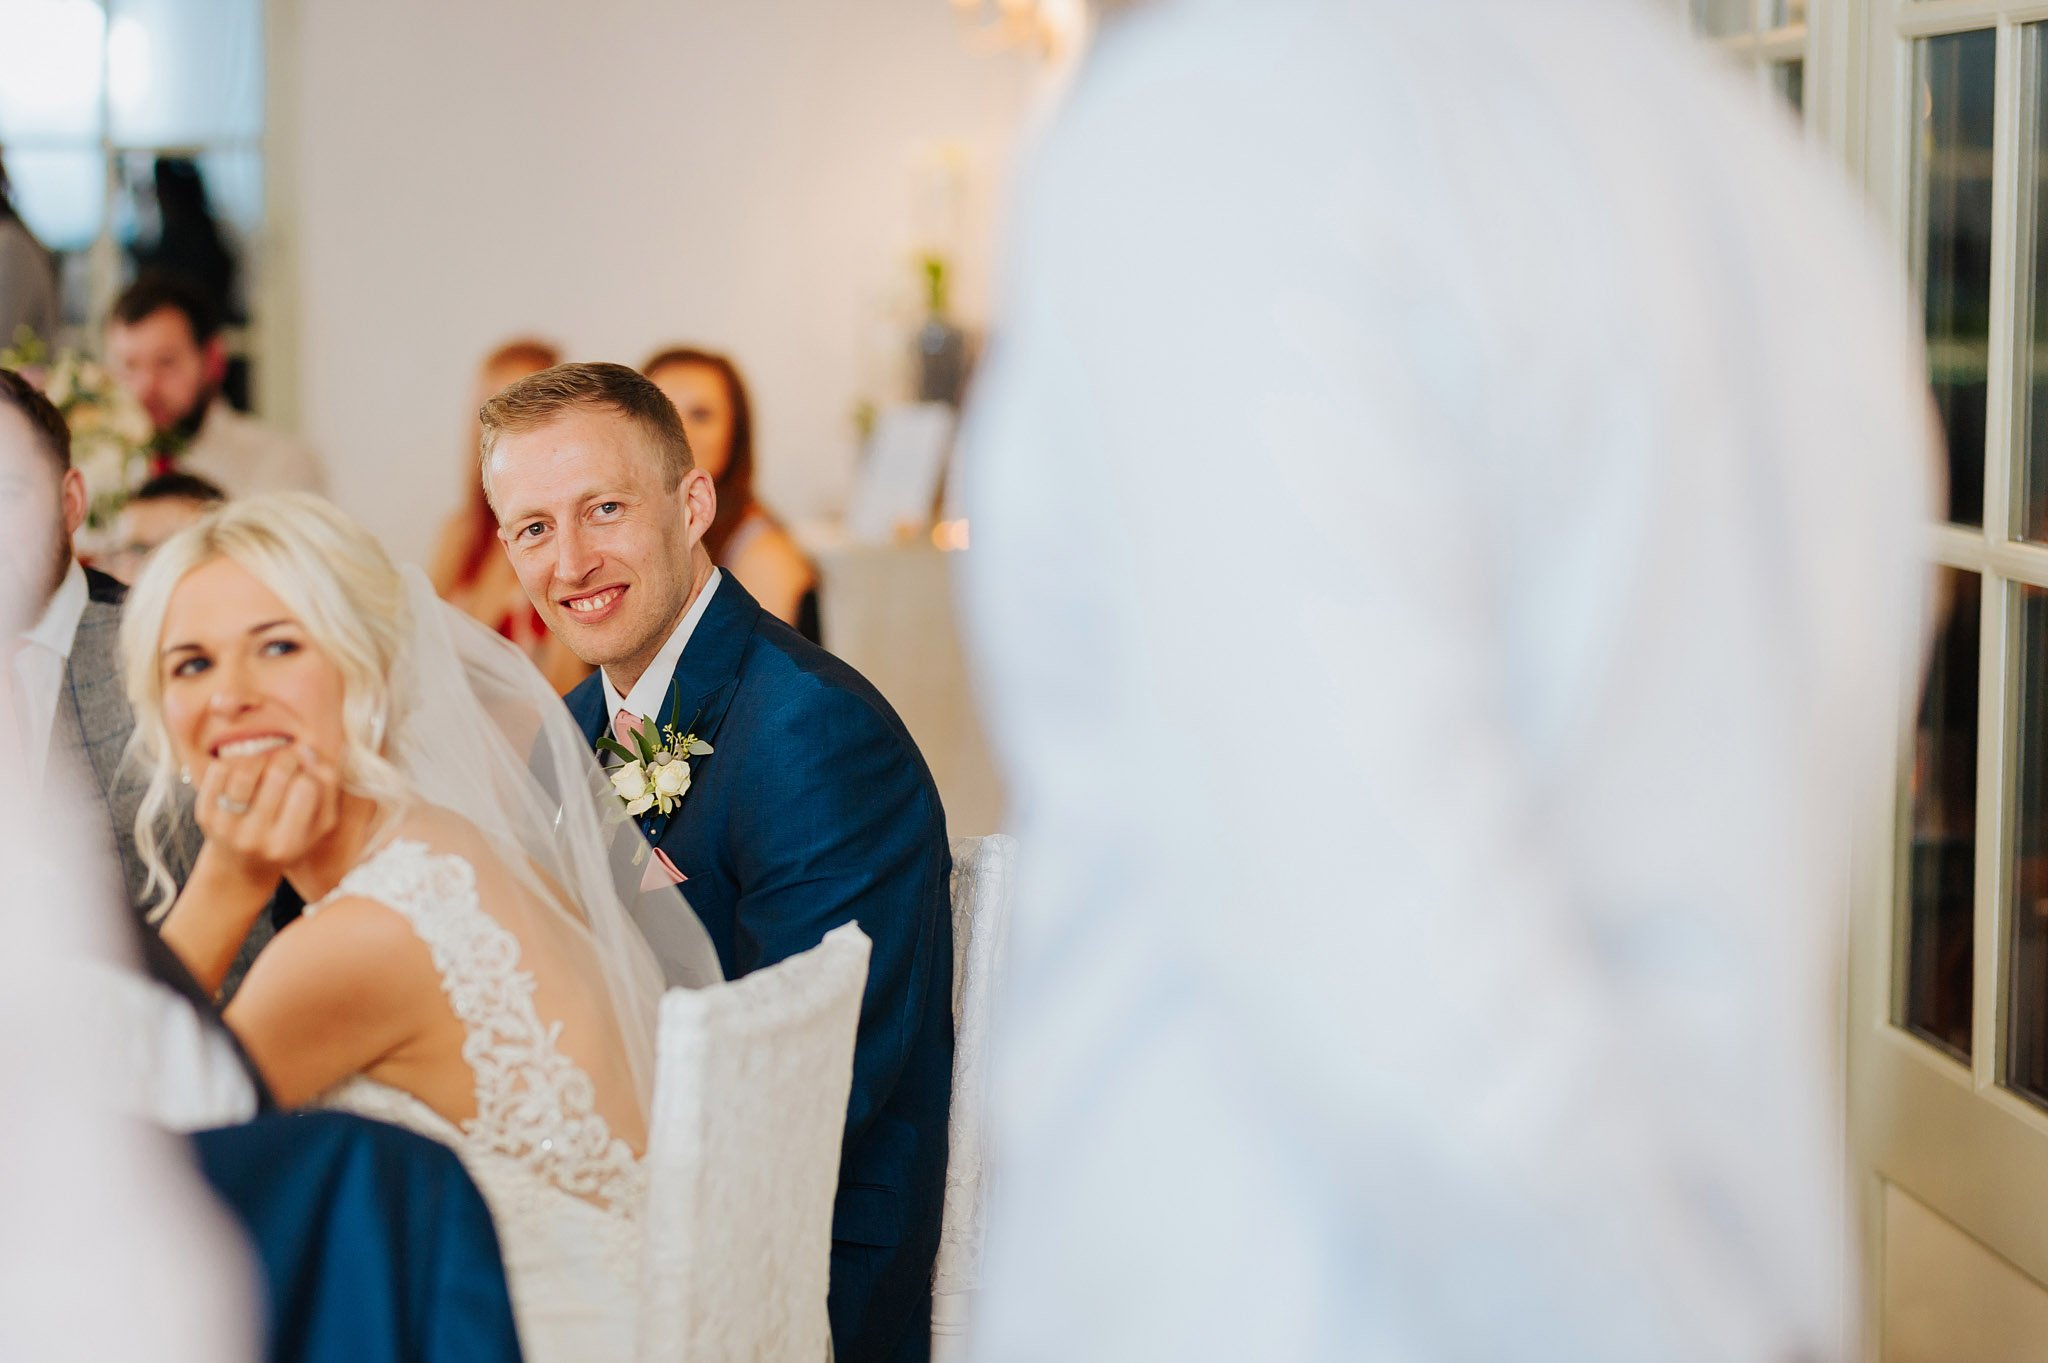 lemore manor wedding herefordshire 118 - Lemore Manor wedding, Herefordshire - West Midlands | Sadie + Ken